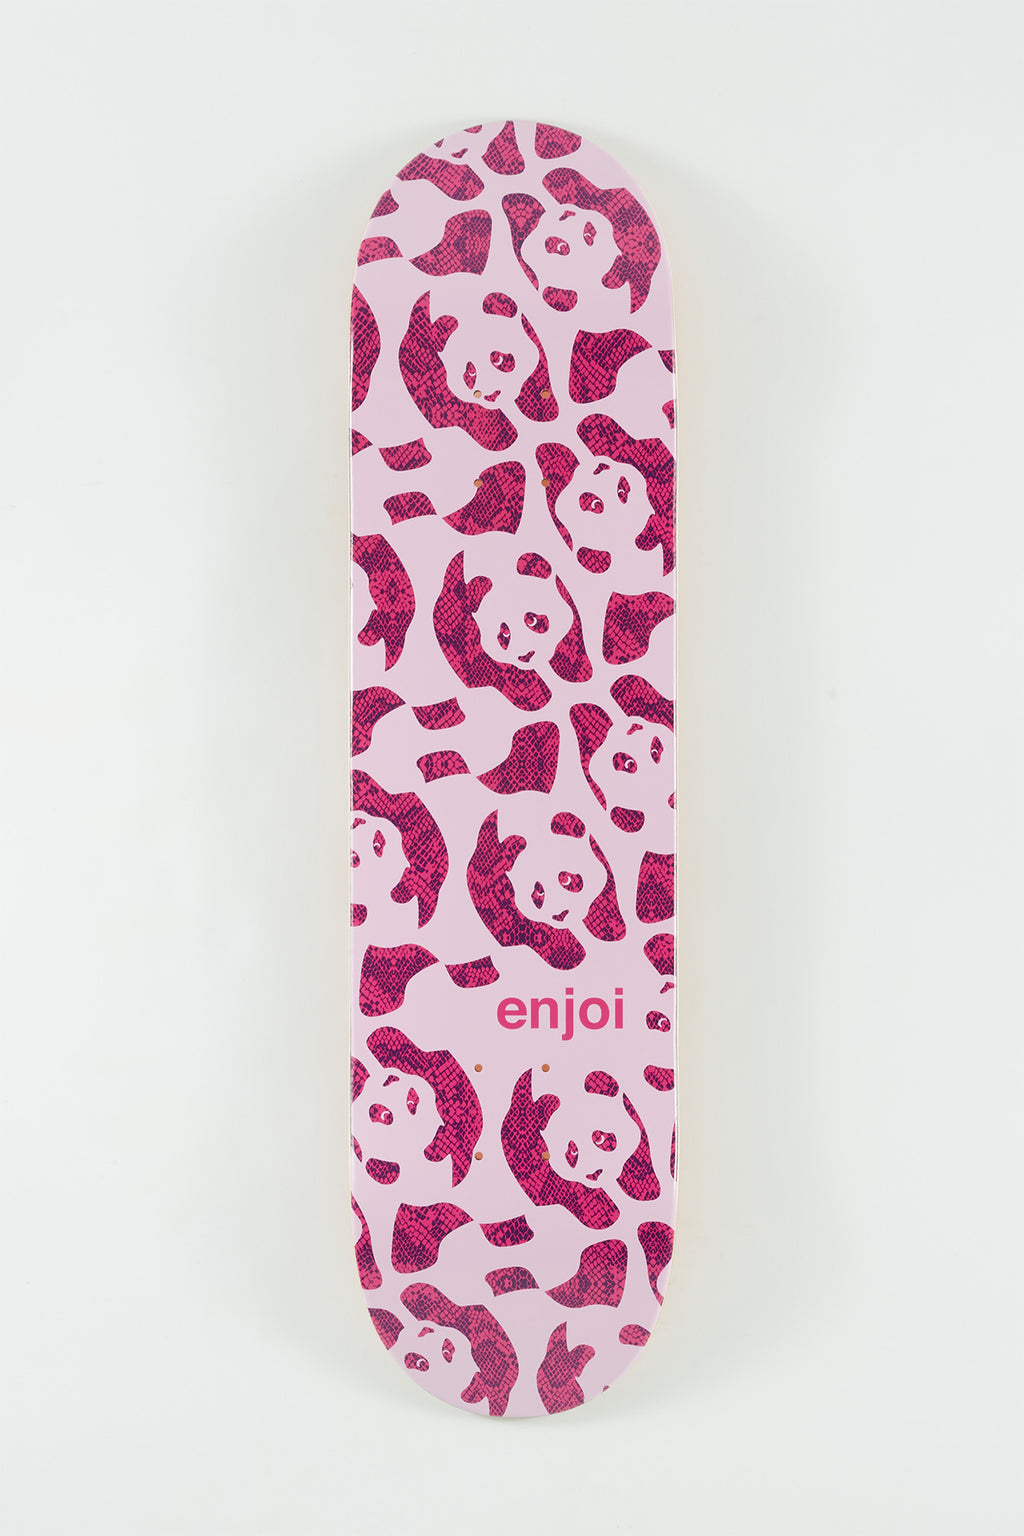 Enjoi Repeater Pink Camo Skateboard Deck 8""